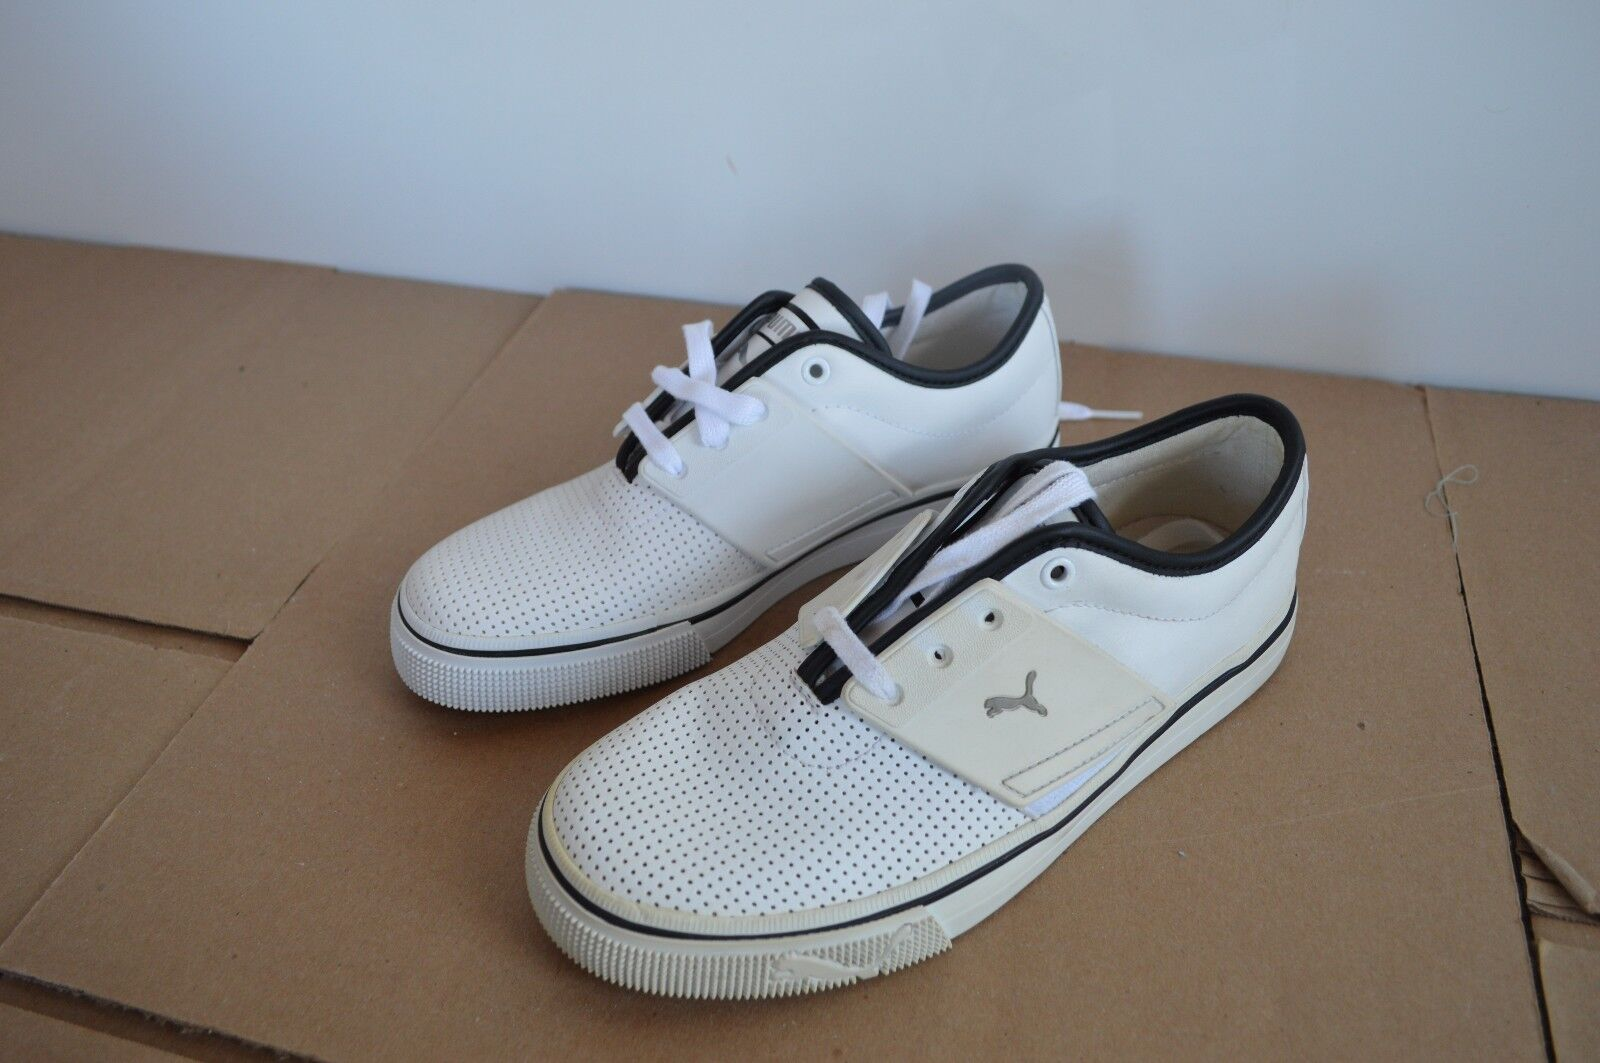 Puma Mens El Ace White Leather Shoes Display Models Great discount